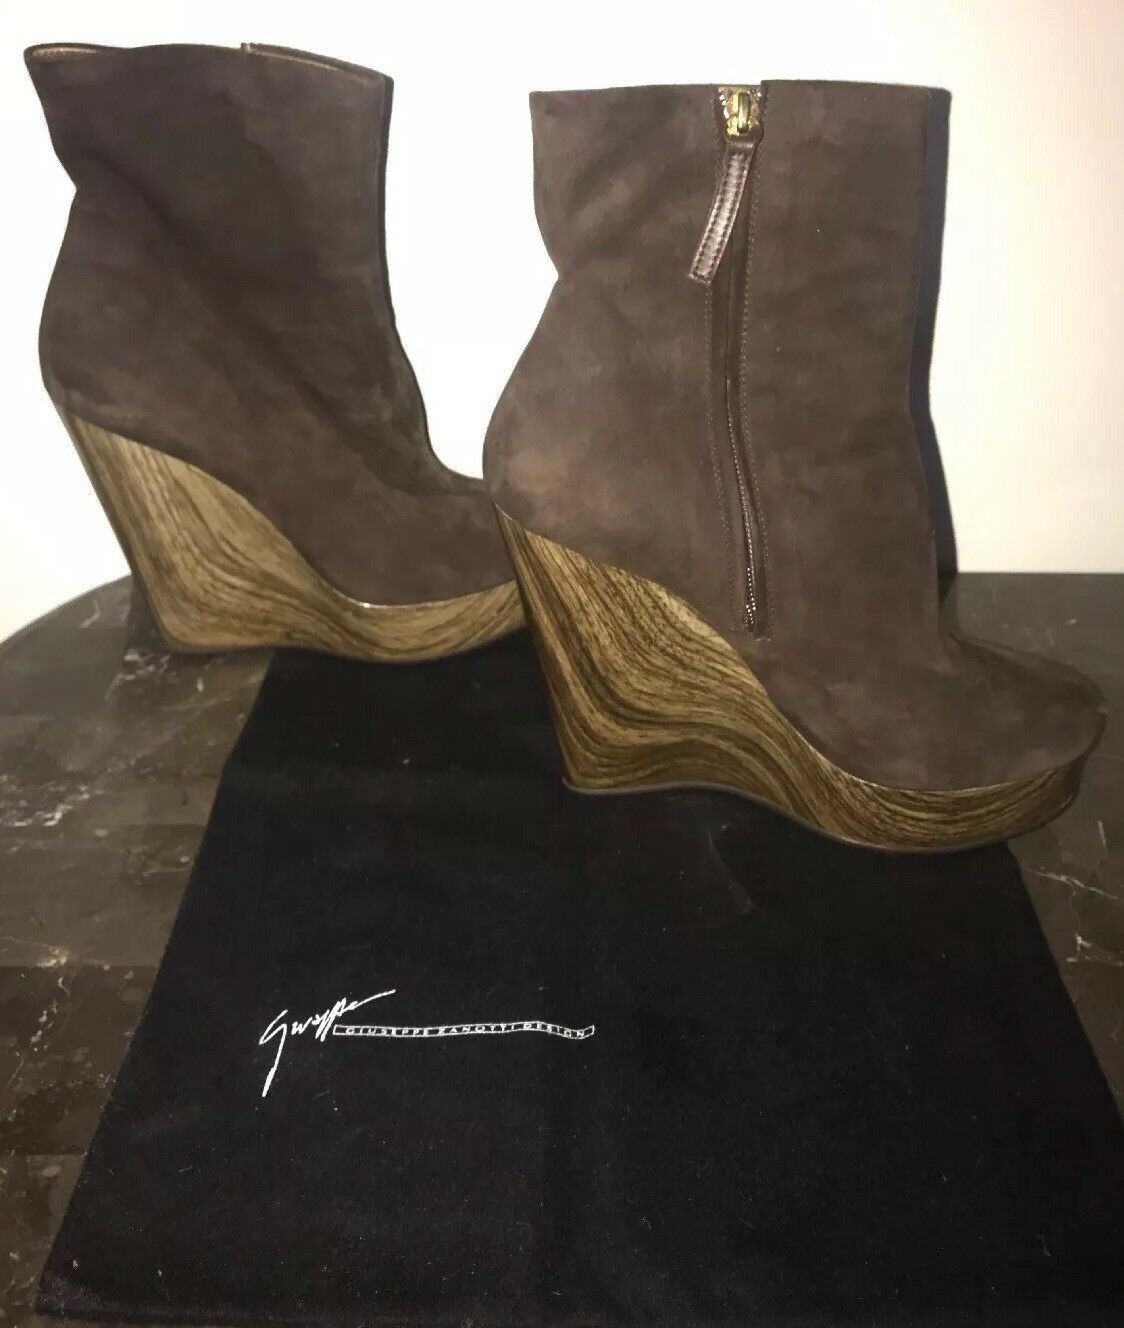 795 Giuseppe Zanotti Suede Ankle Stiefelies 39 Itaky Authentic Dust Bag